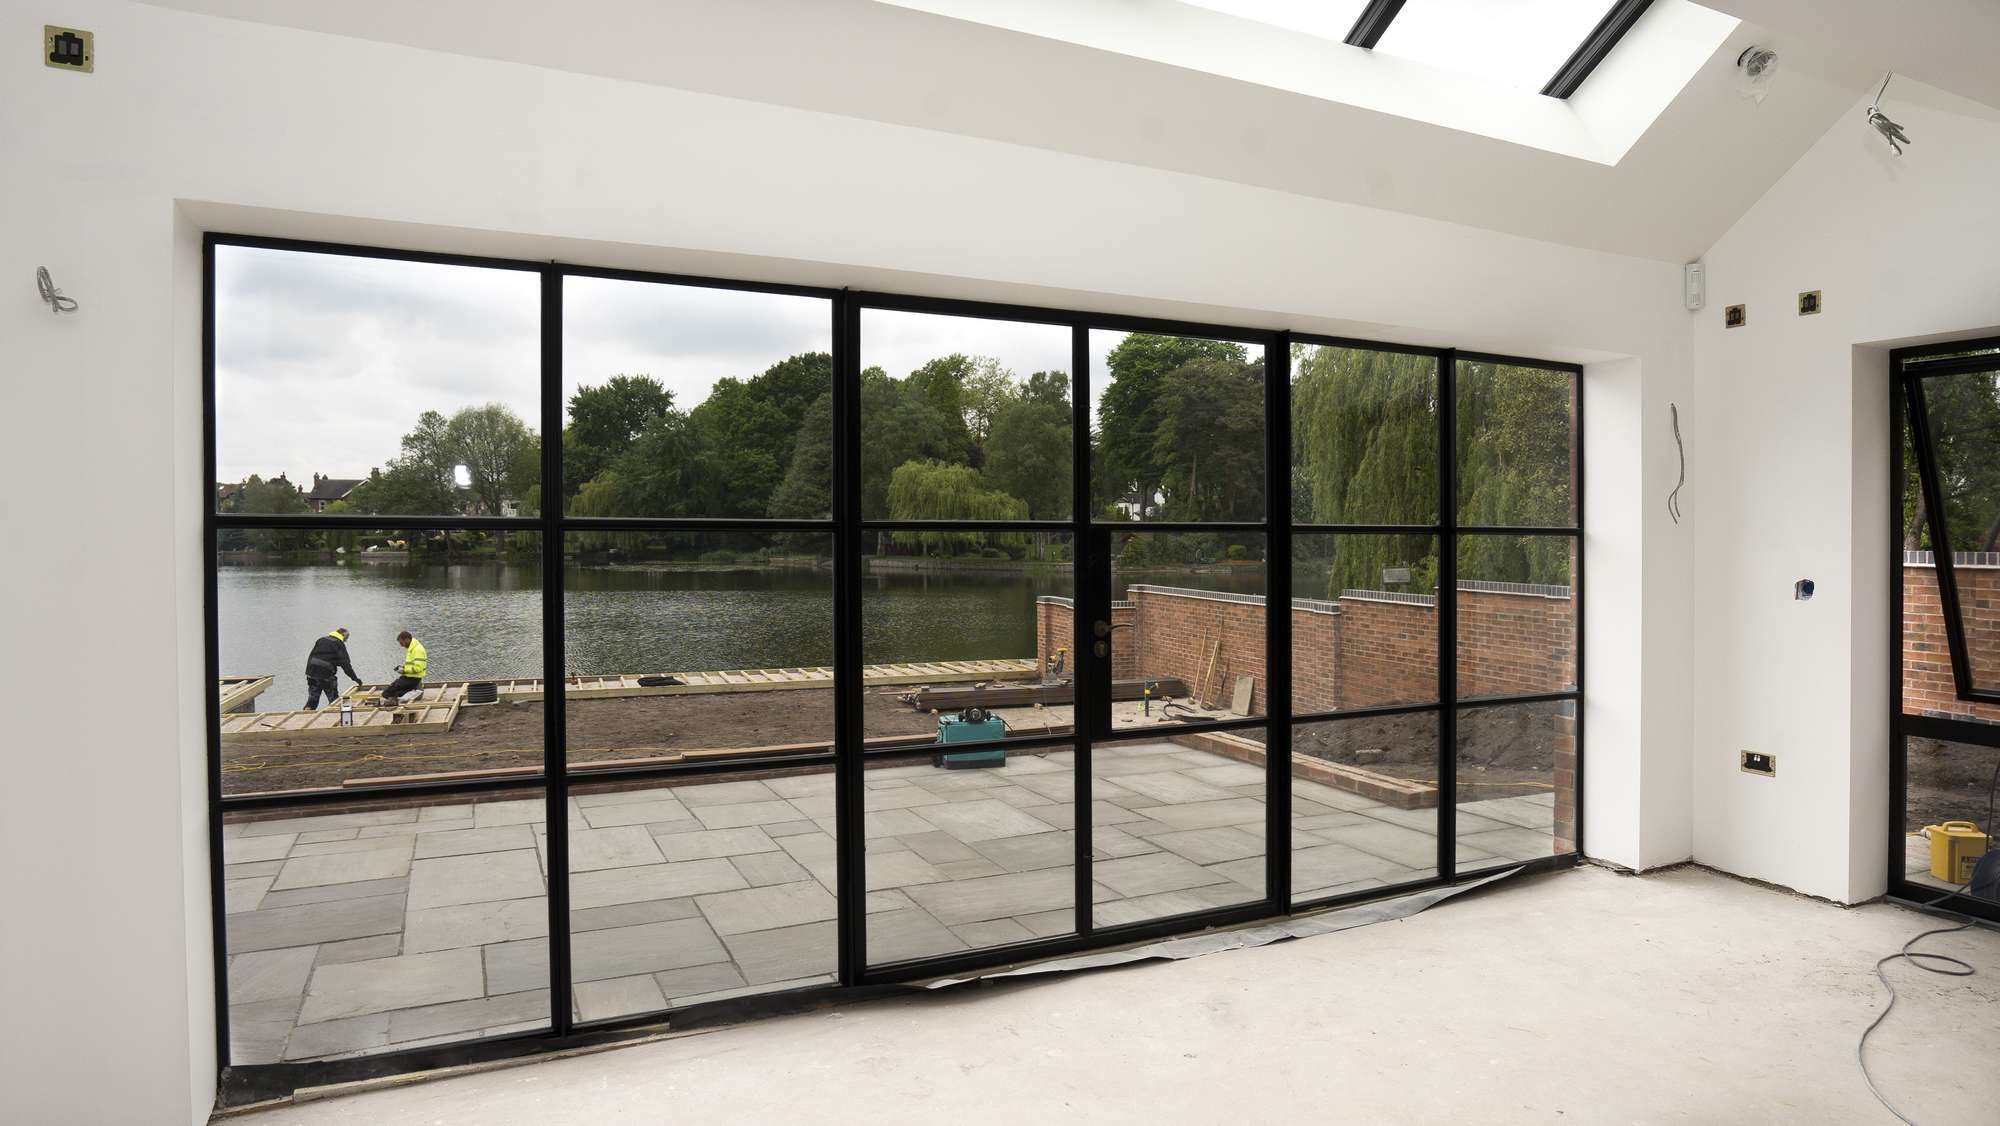 Internal View Of Large Crittall Screen In Black With Opening Doors And Sidelights In 2020 Crittall Patio Doors Sliding Patio Doors